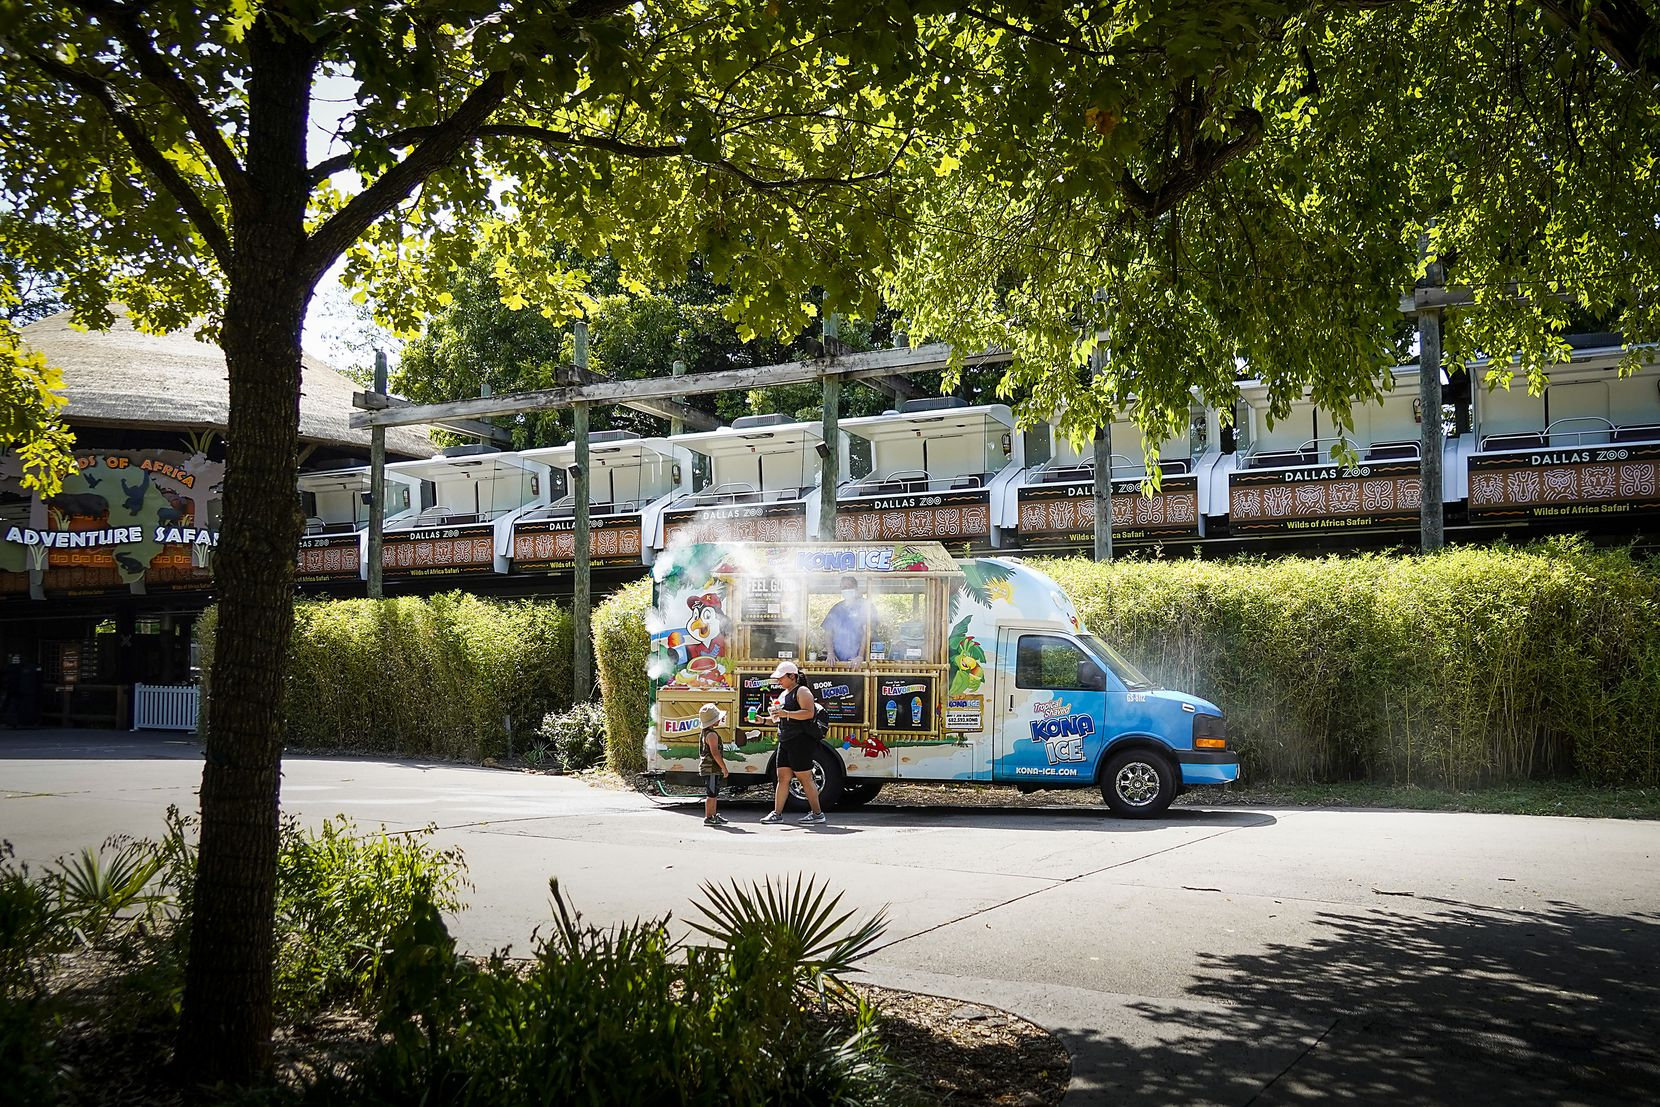 Guests stop for shaved ice beneath the Adventure Safari Monorail at the Dallas Zoo on Thursday.